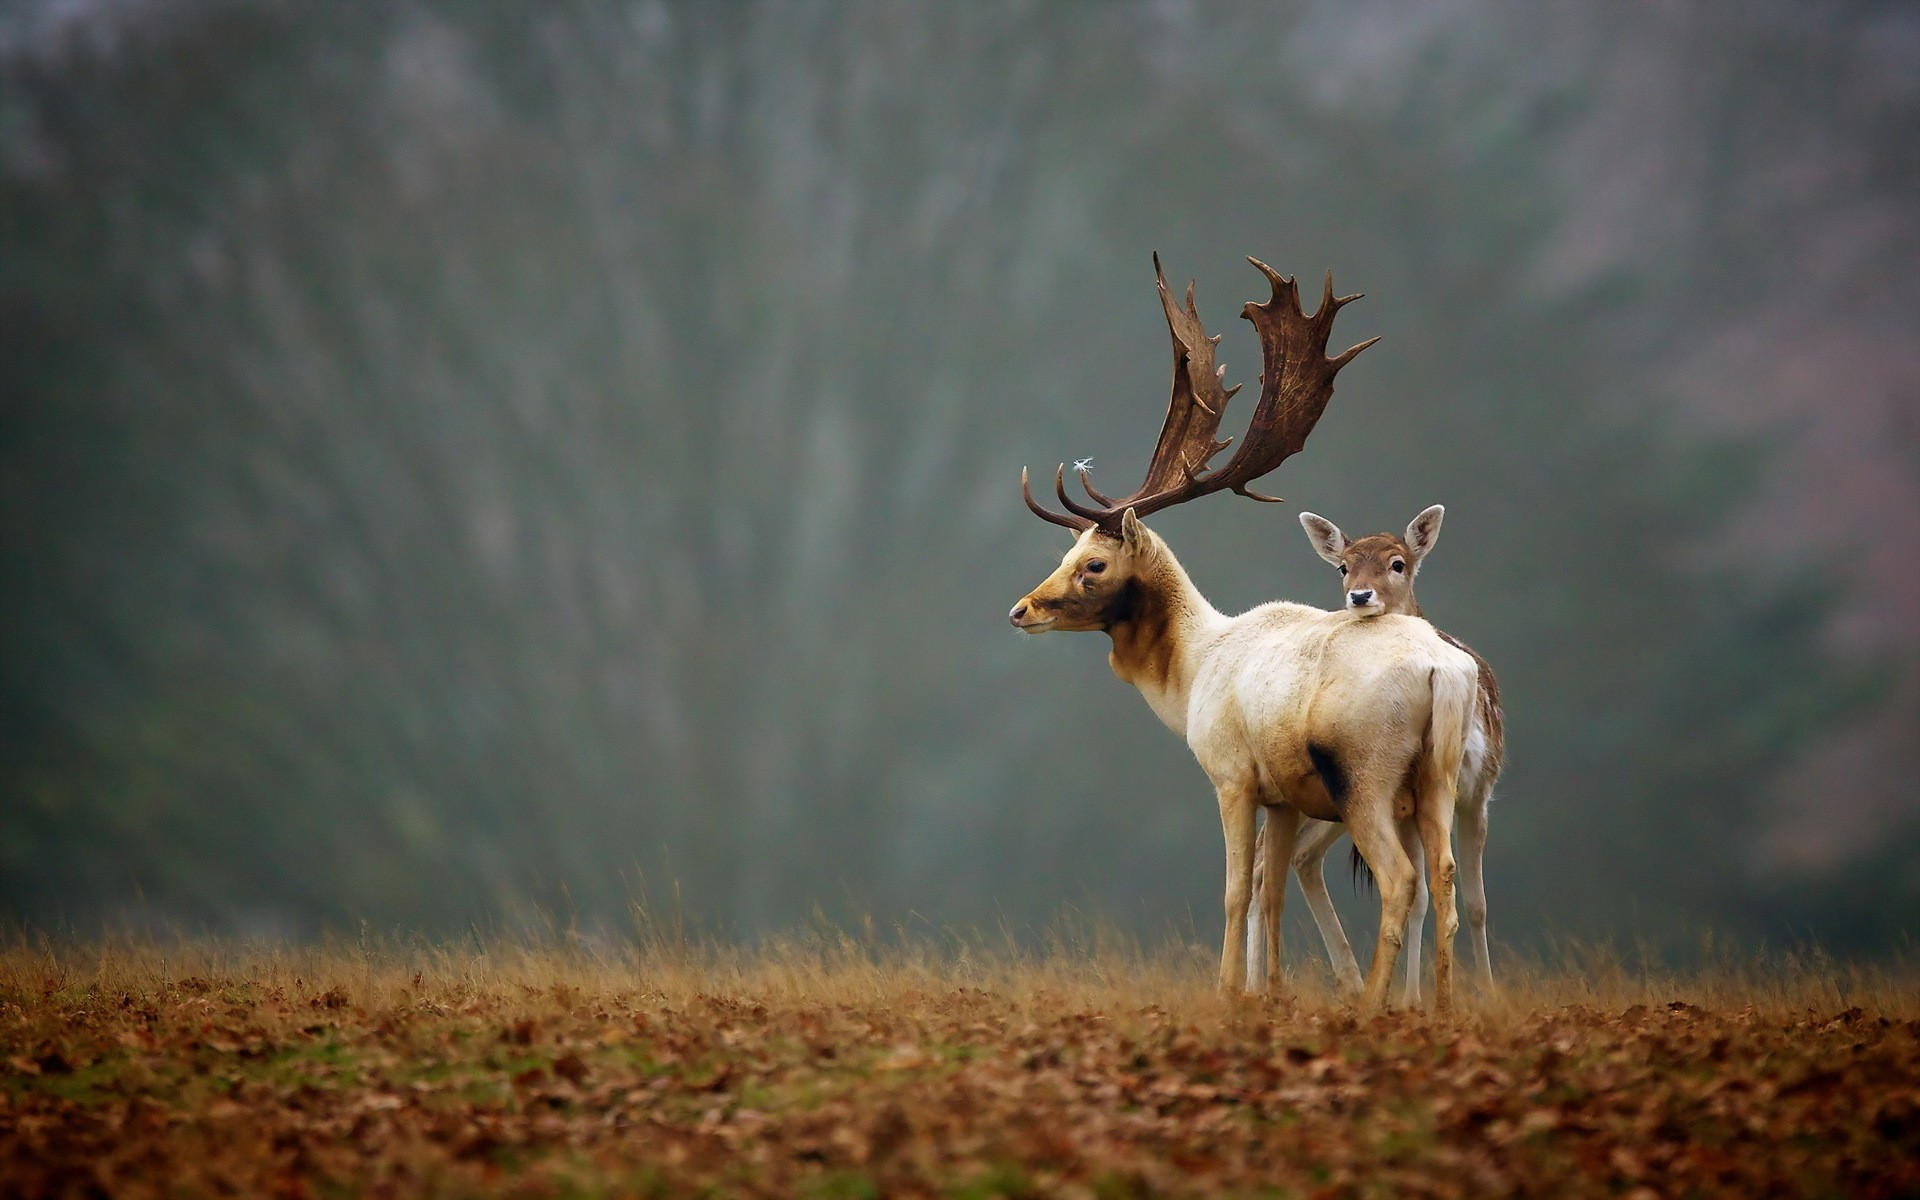 elk animals nature landscapes trees fields grass wildlife babies fawn horns antlers wallpaper background